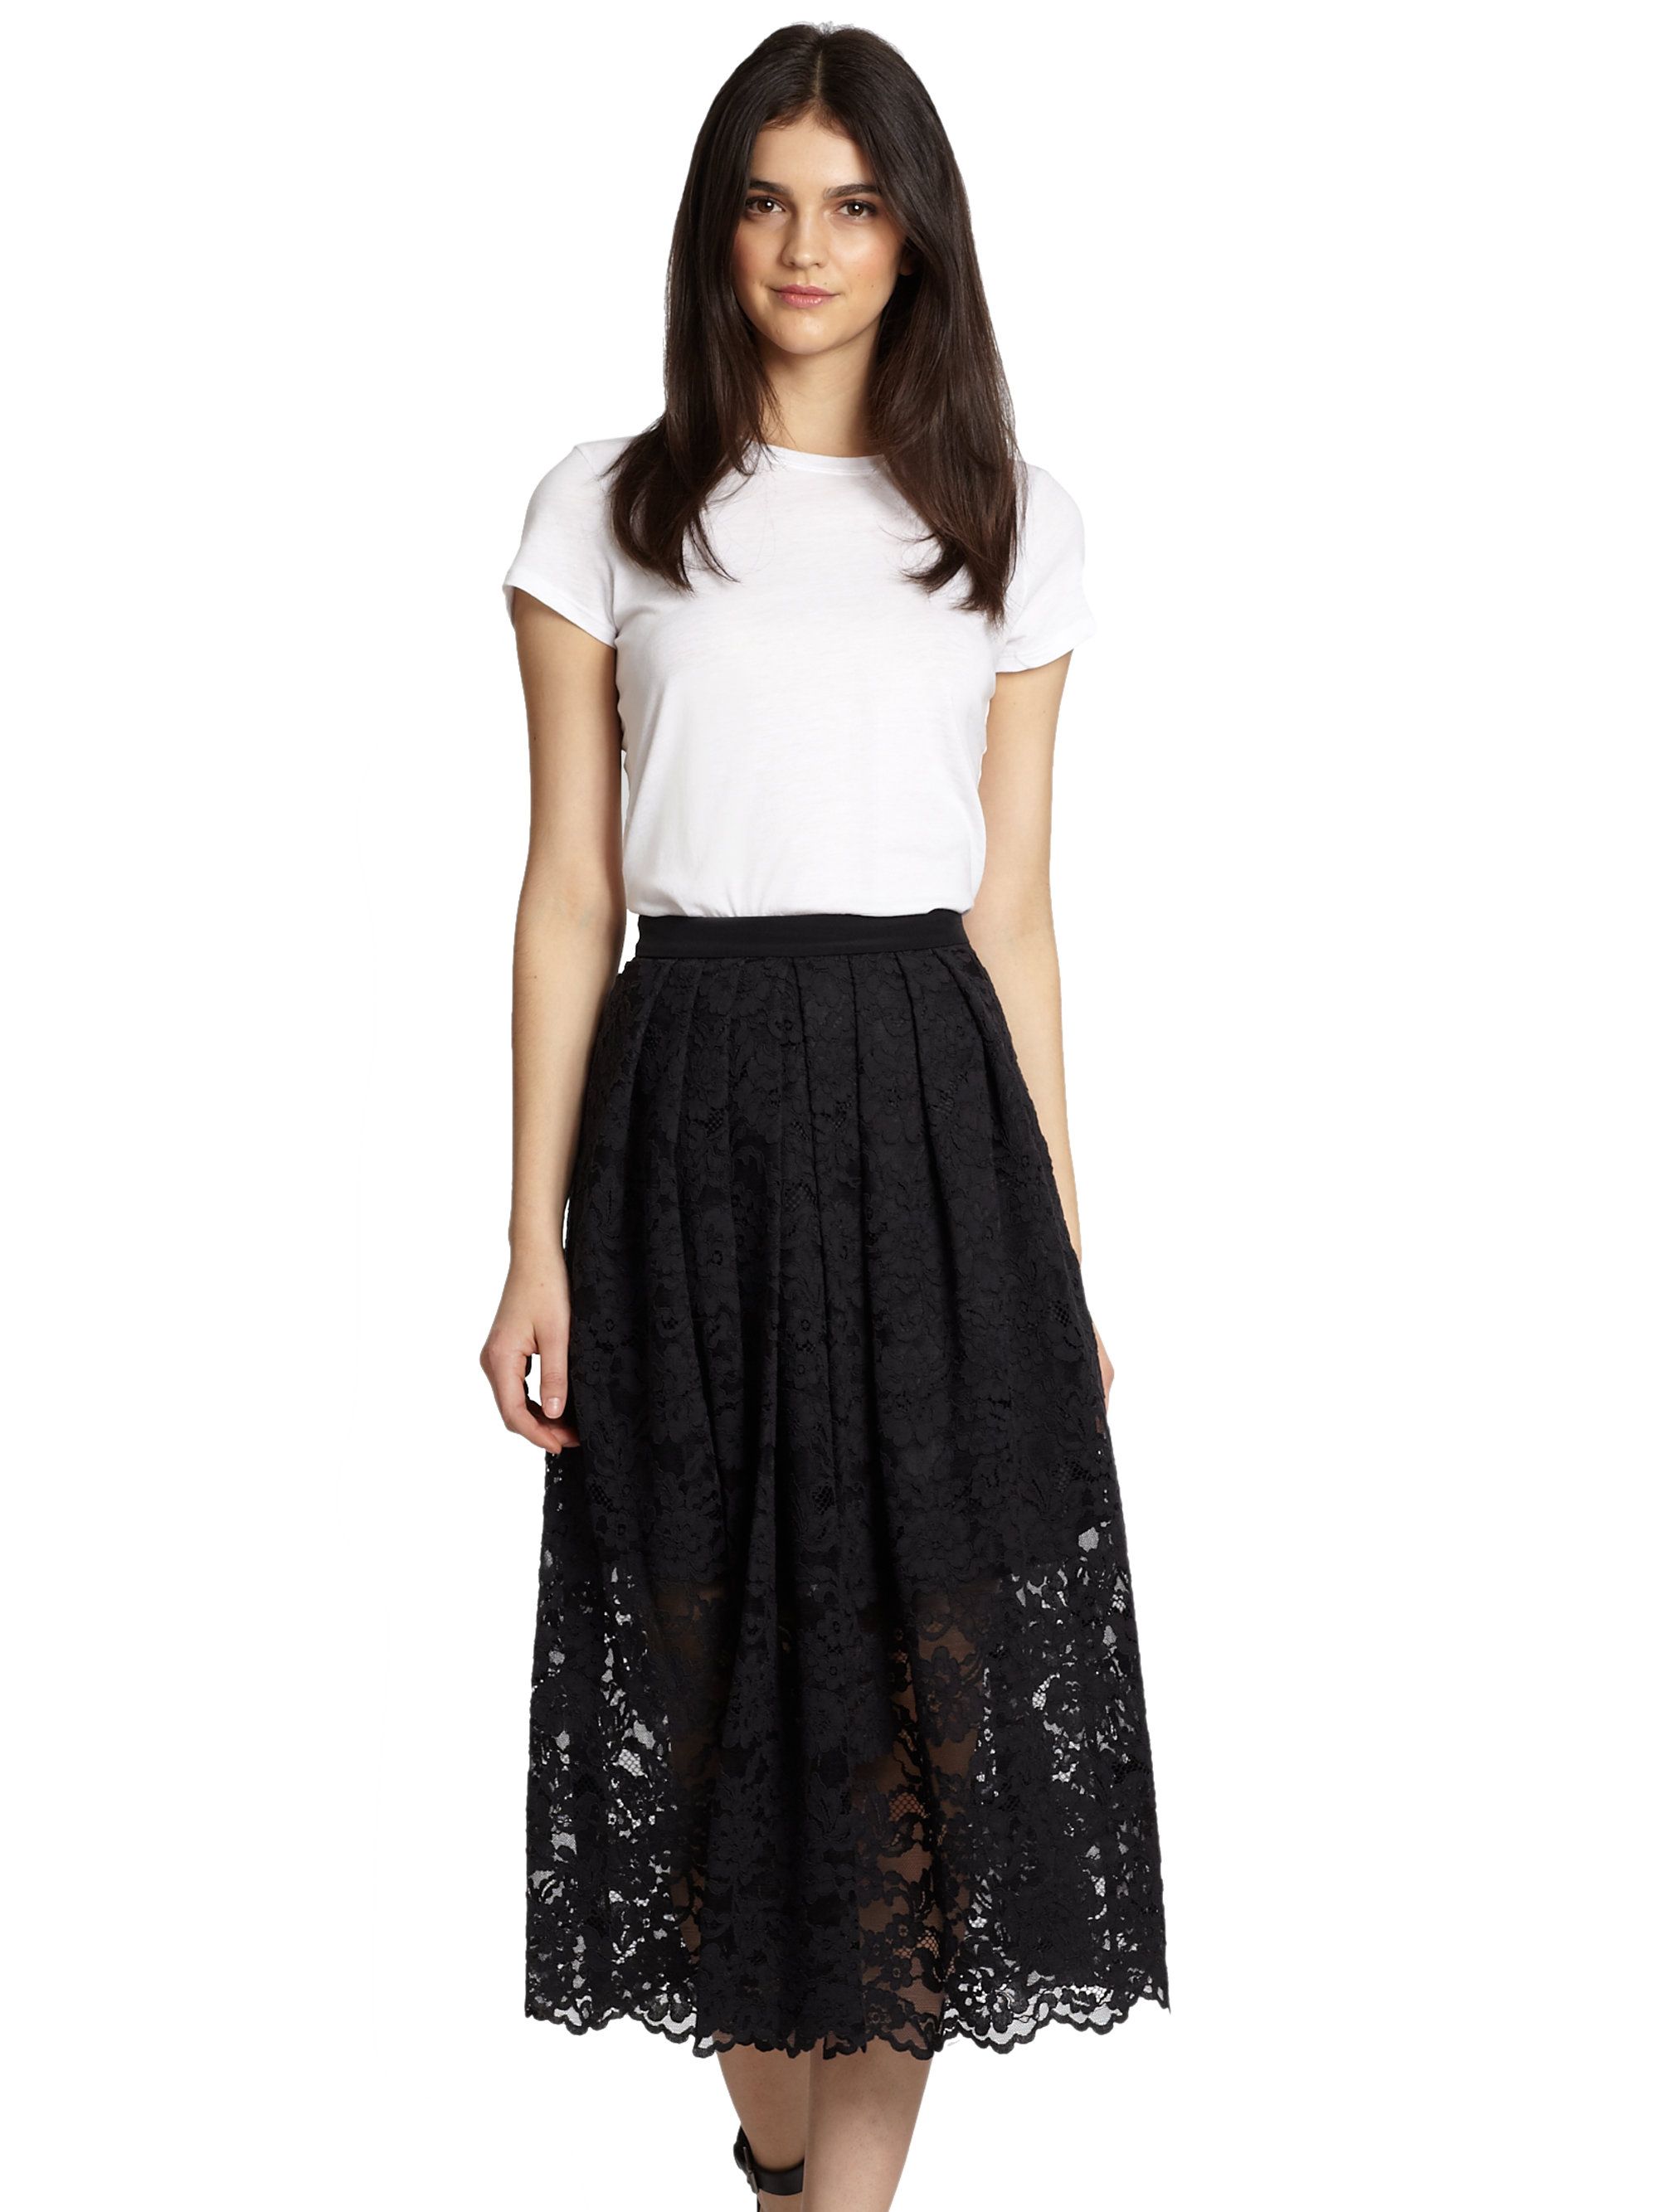 Lace & Beads tulle midi skirt in black. $ Closet London full prom sateen midi skirt in emerald green. $ Dr Denim cord button through venla skirt. $ ASOS DESIGN premium floral lace midi skirt. $ Weekday asymmetric denim skirt with raw hem in trotter black. $